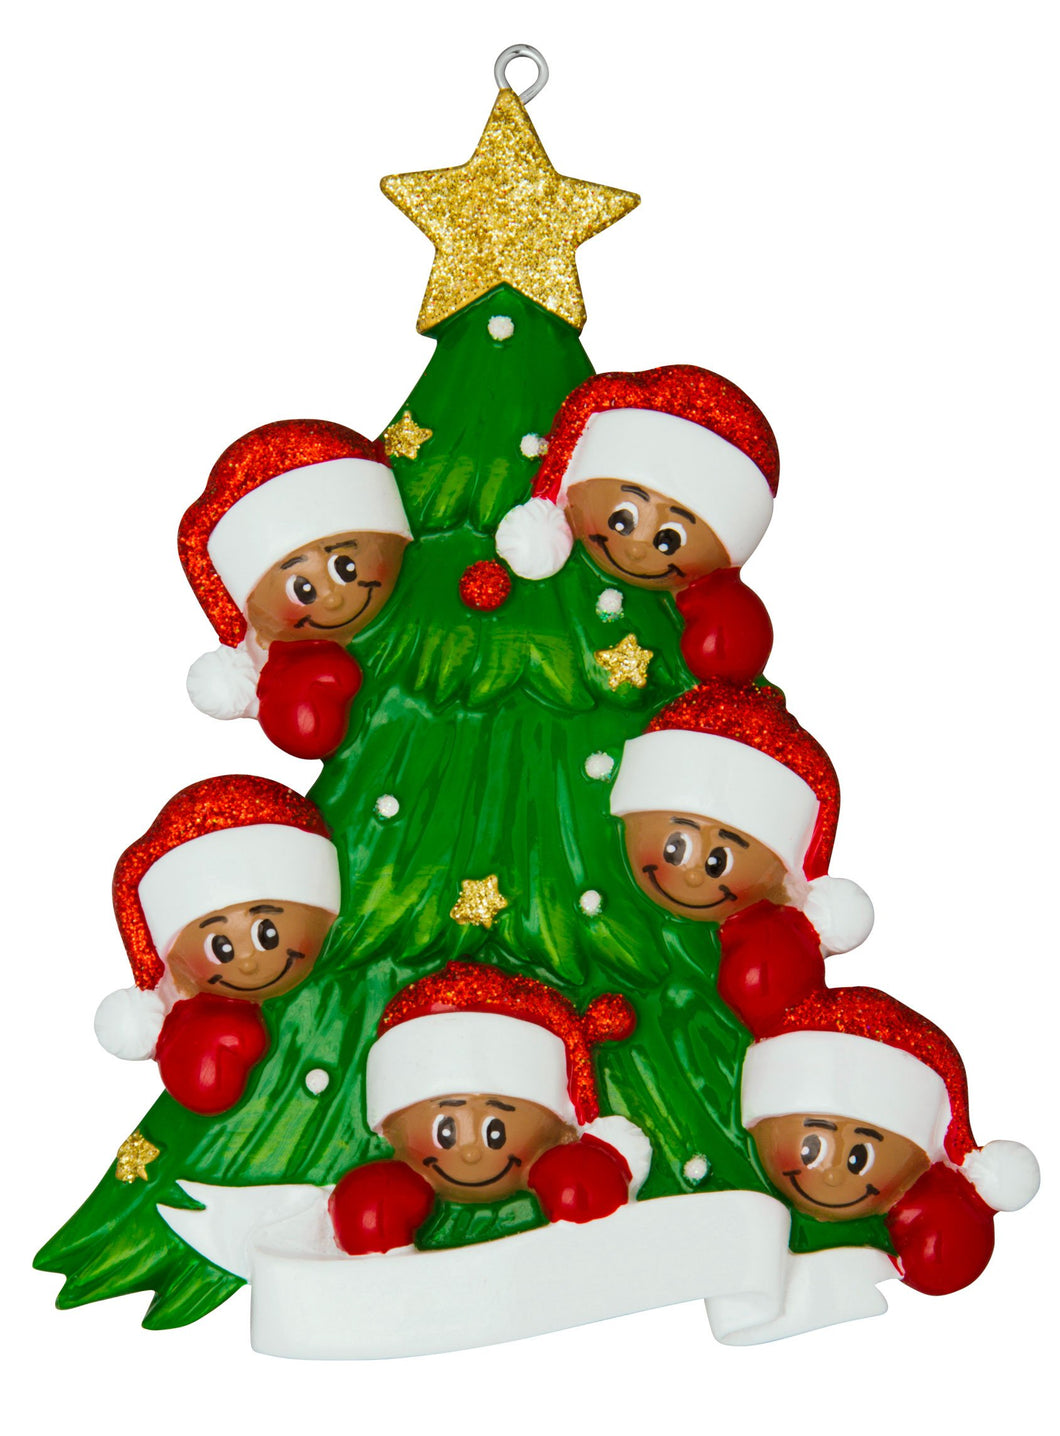 Christmas Tree with 6 Faces Christmas Ornament